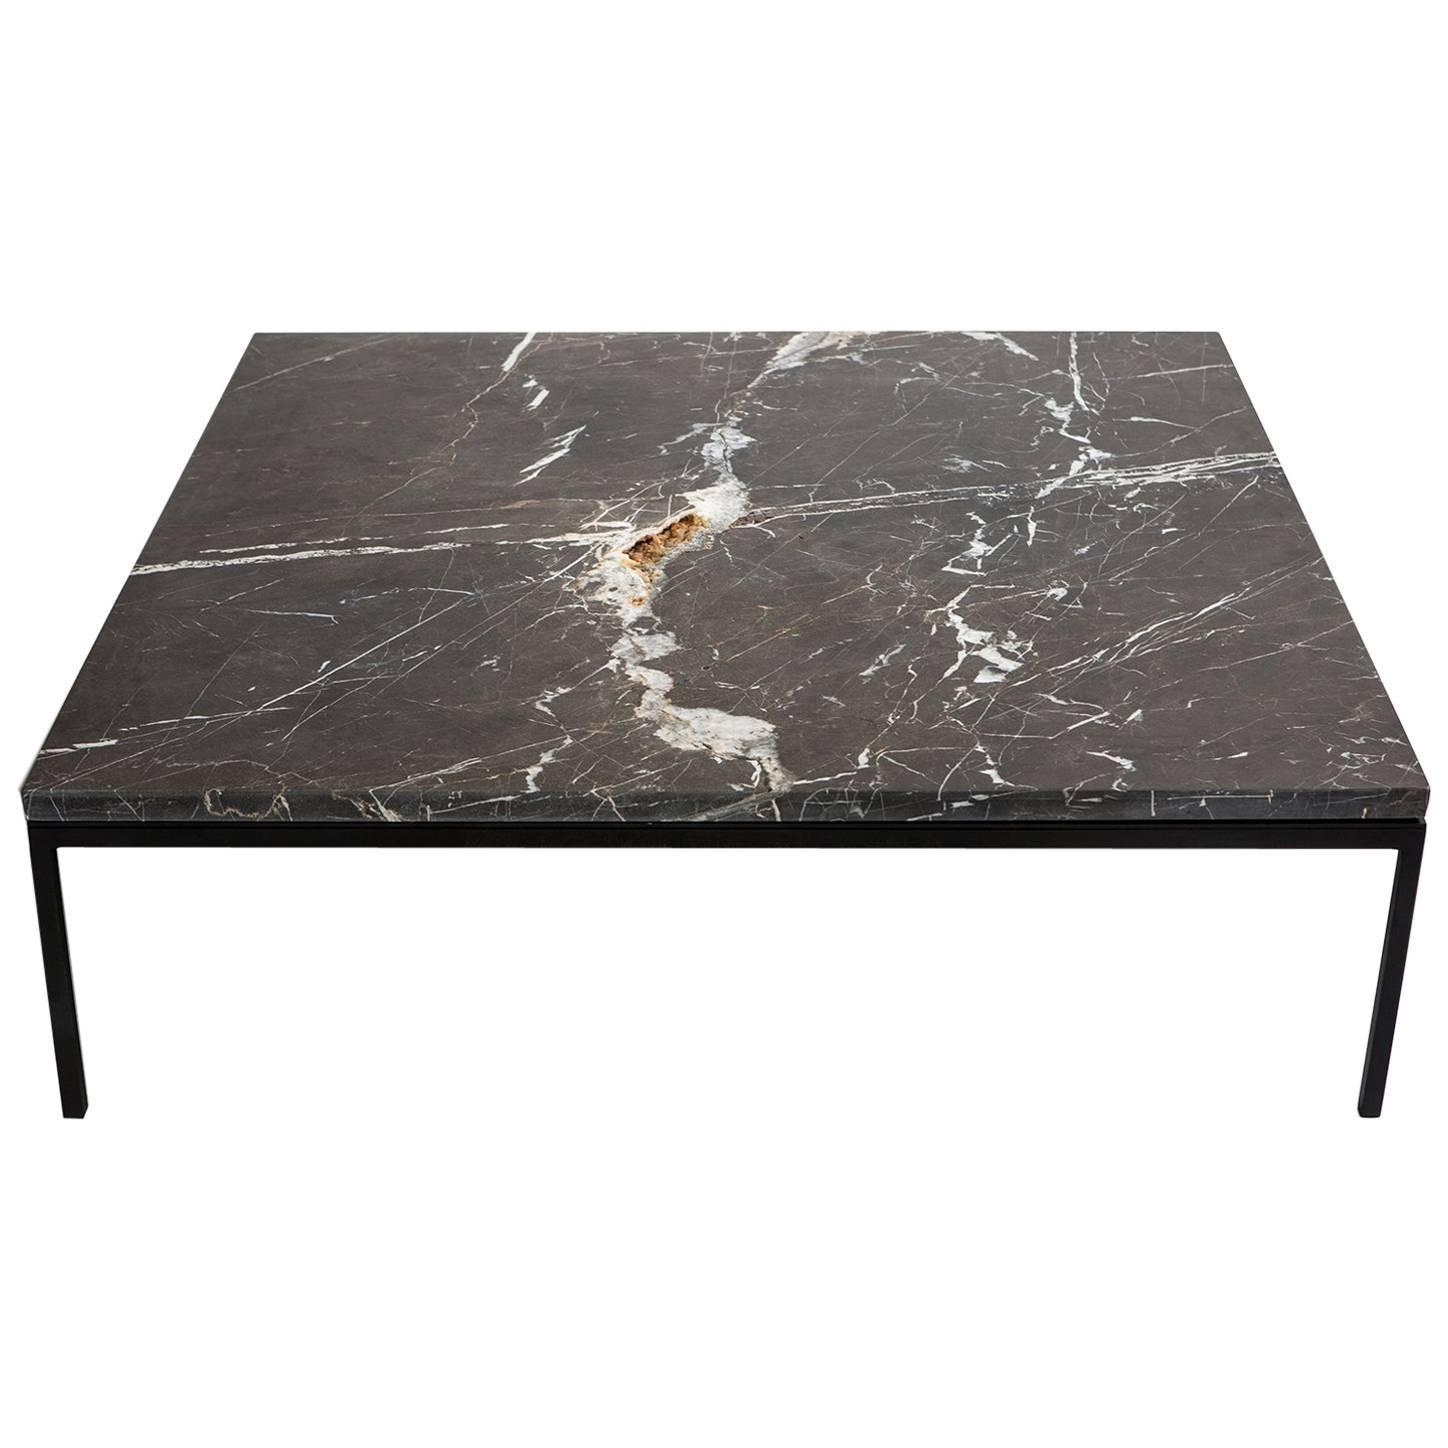 Lost and Found Coffee Table in Rosa Alicante Marble and Polished